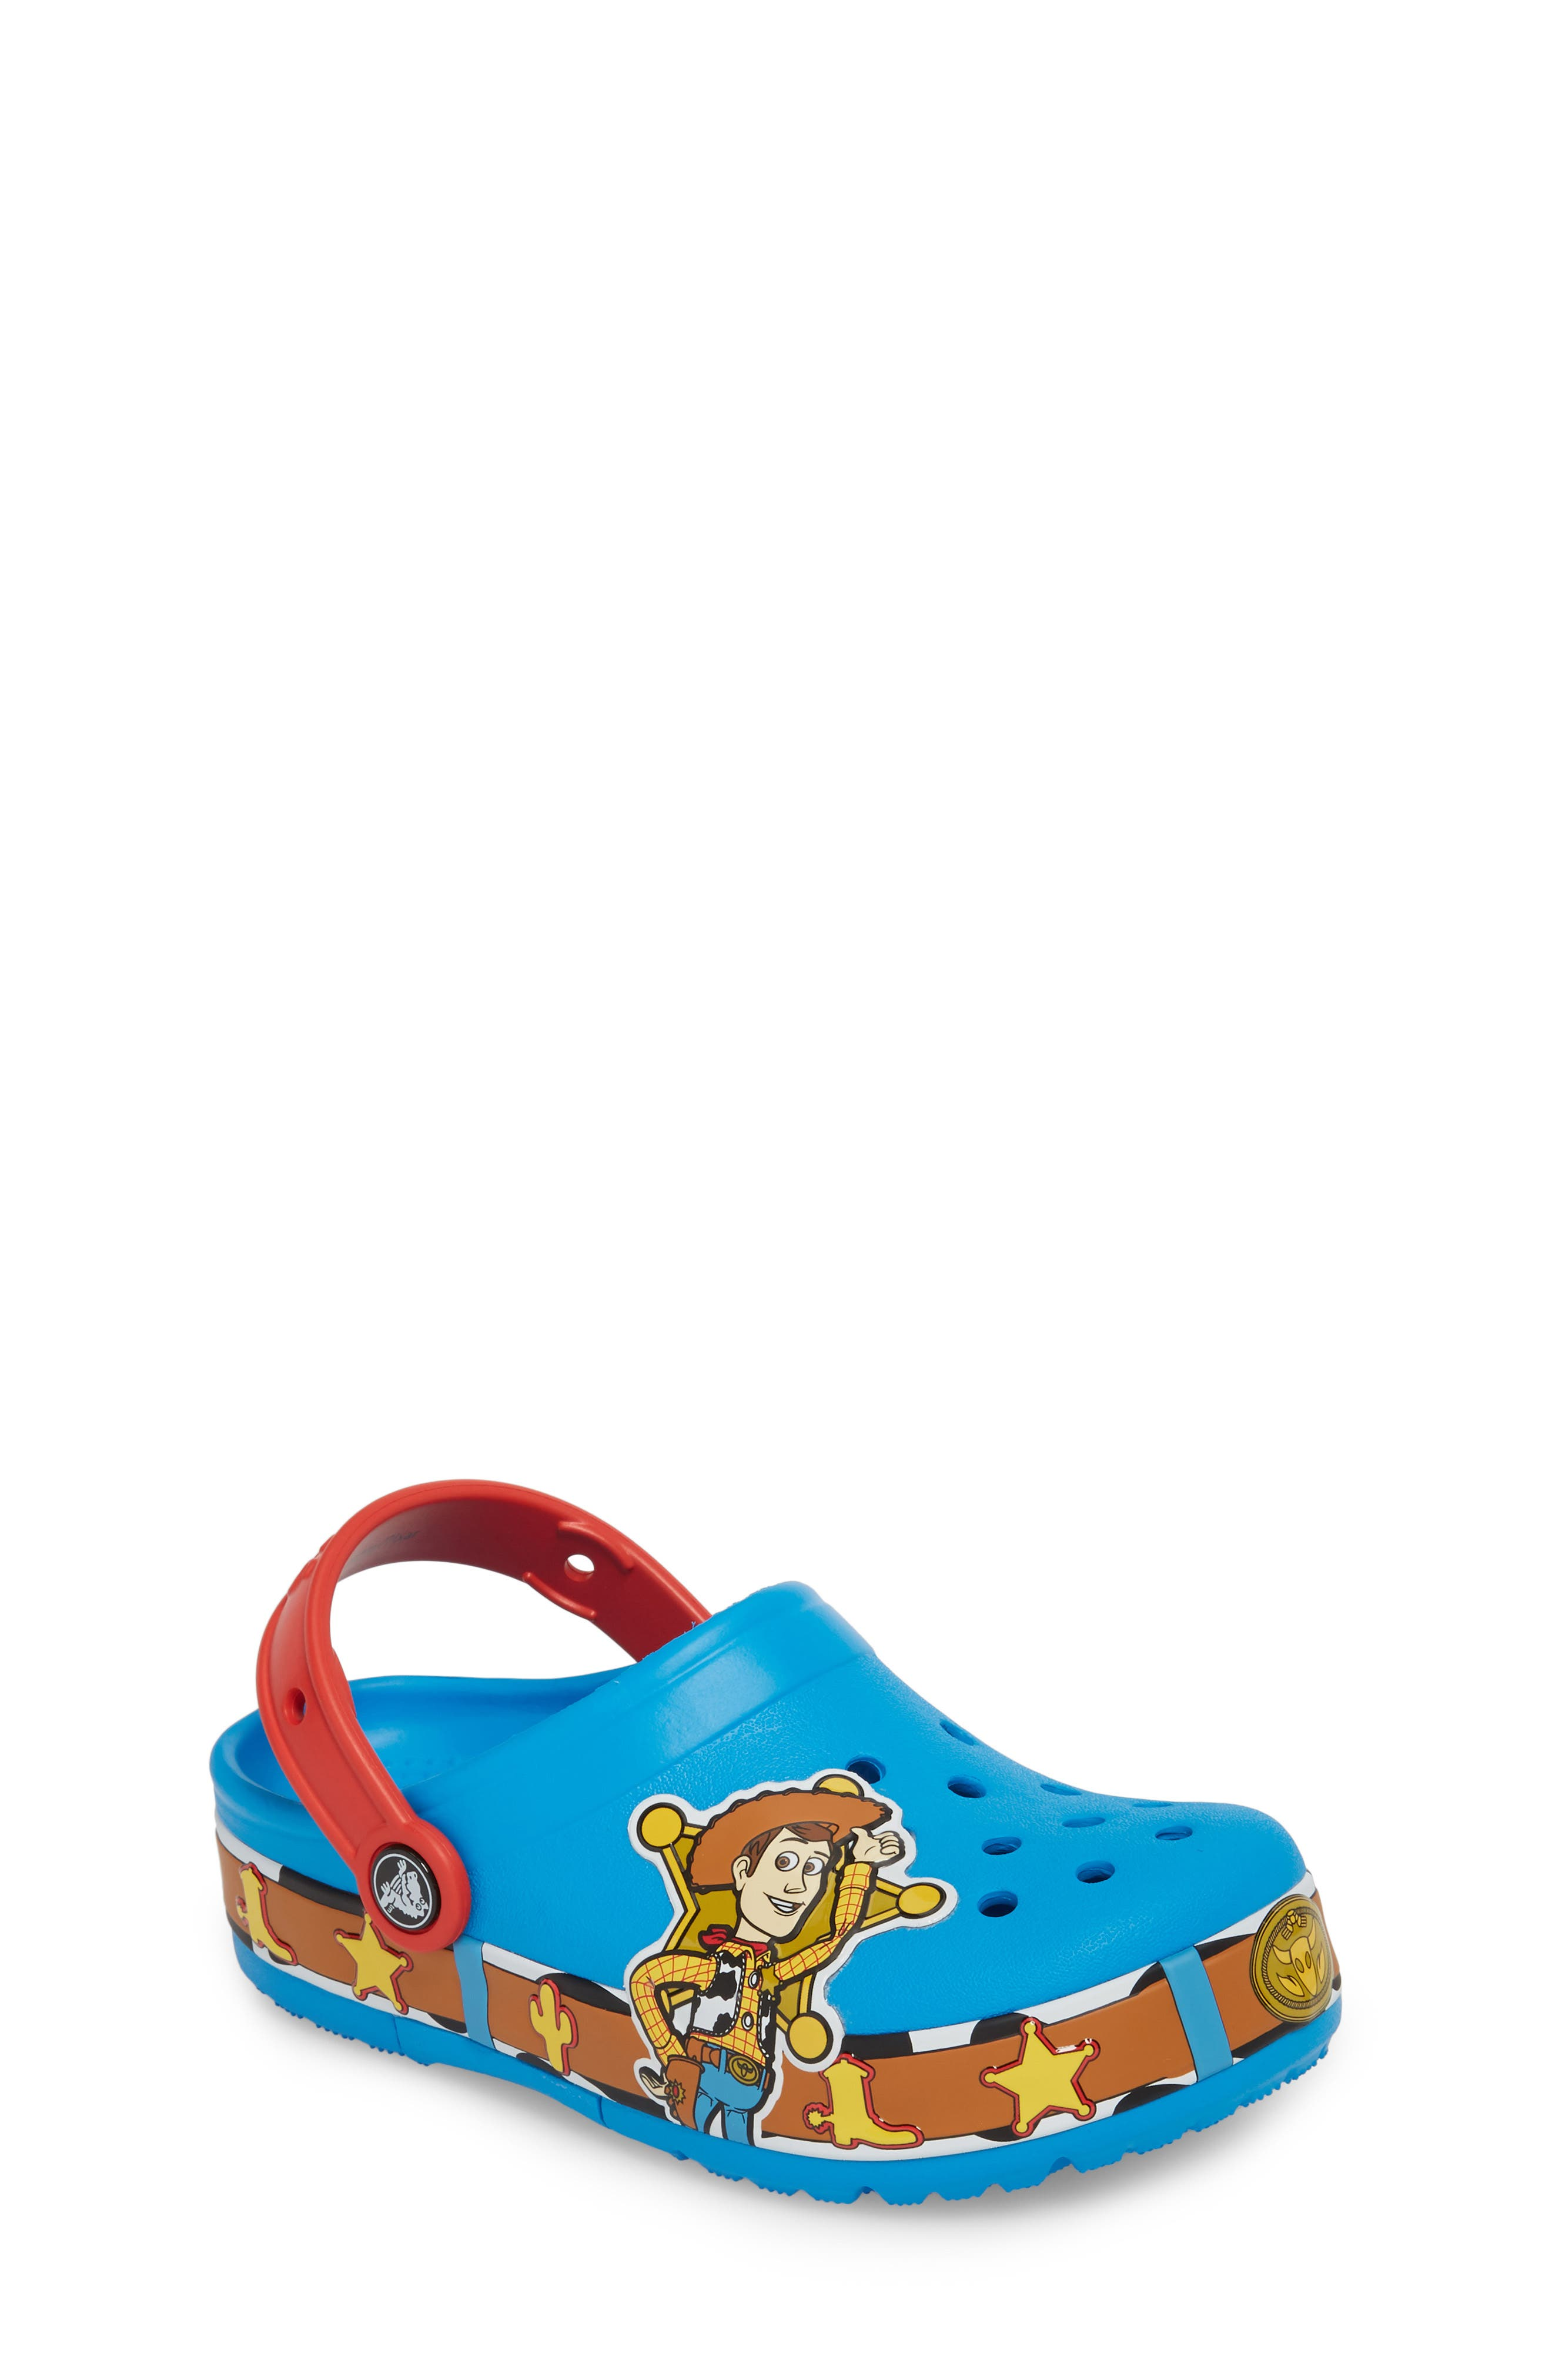 Disney Toy Story - Woody Crocband Light-Up Slip-On,                             Main thumbnail 1, color,                             456